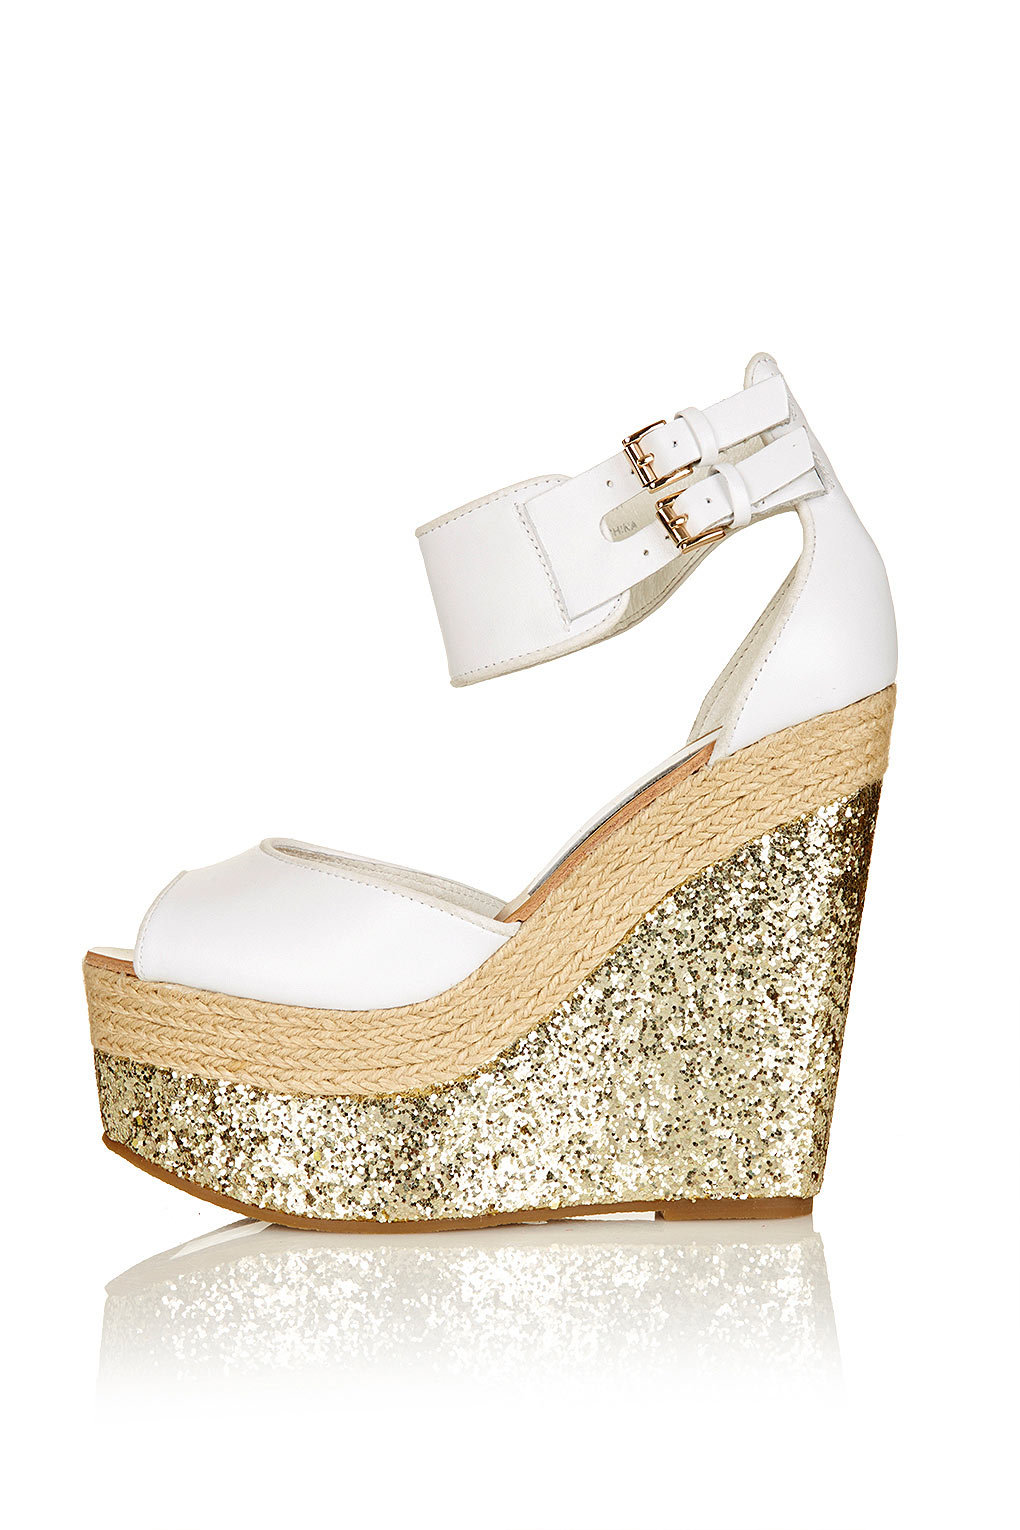 whirlwind espadrille wedges heels from topshop shoes